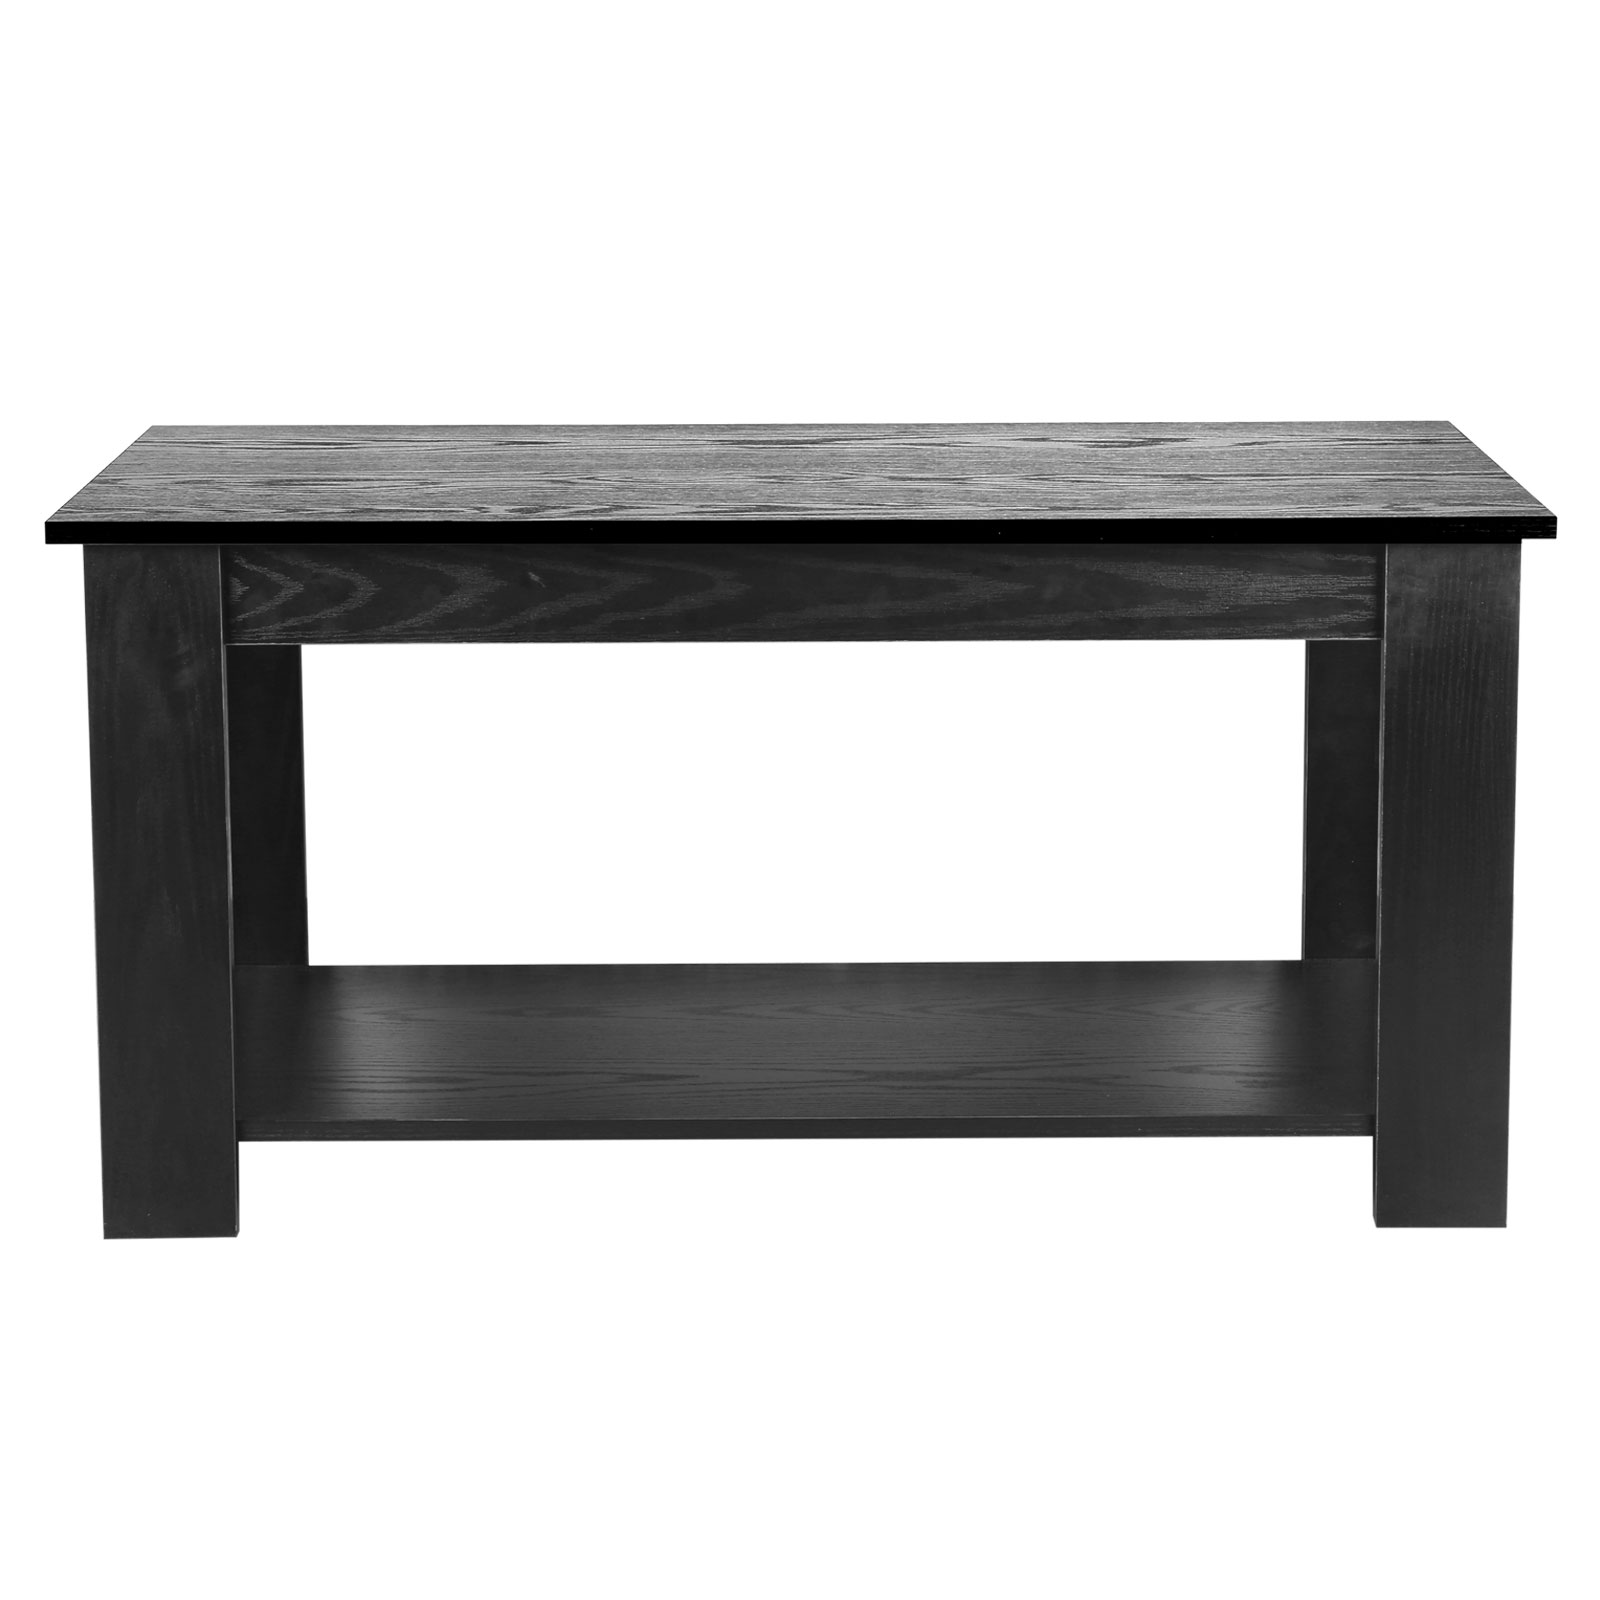 Lift Up Top Coffee Table Living Room Metal Hinge Wood Effect Storage Shelf Black Ebay